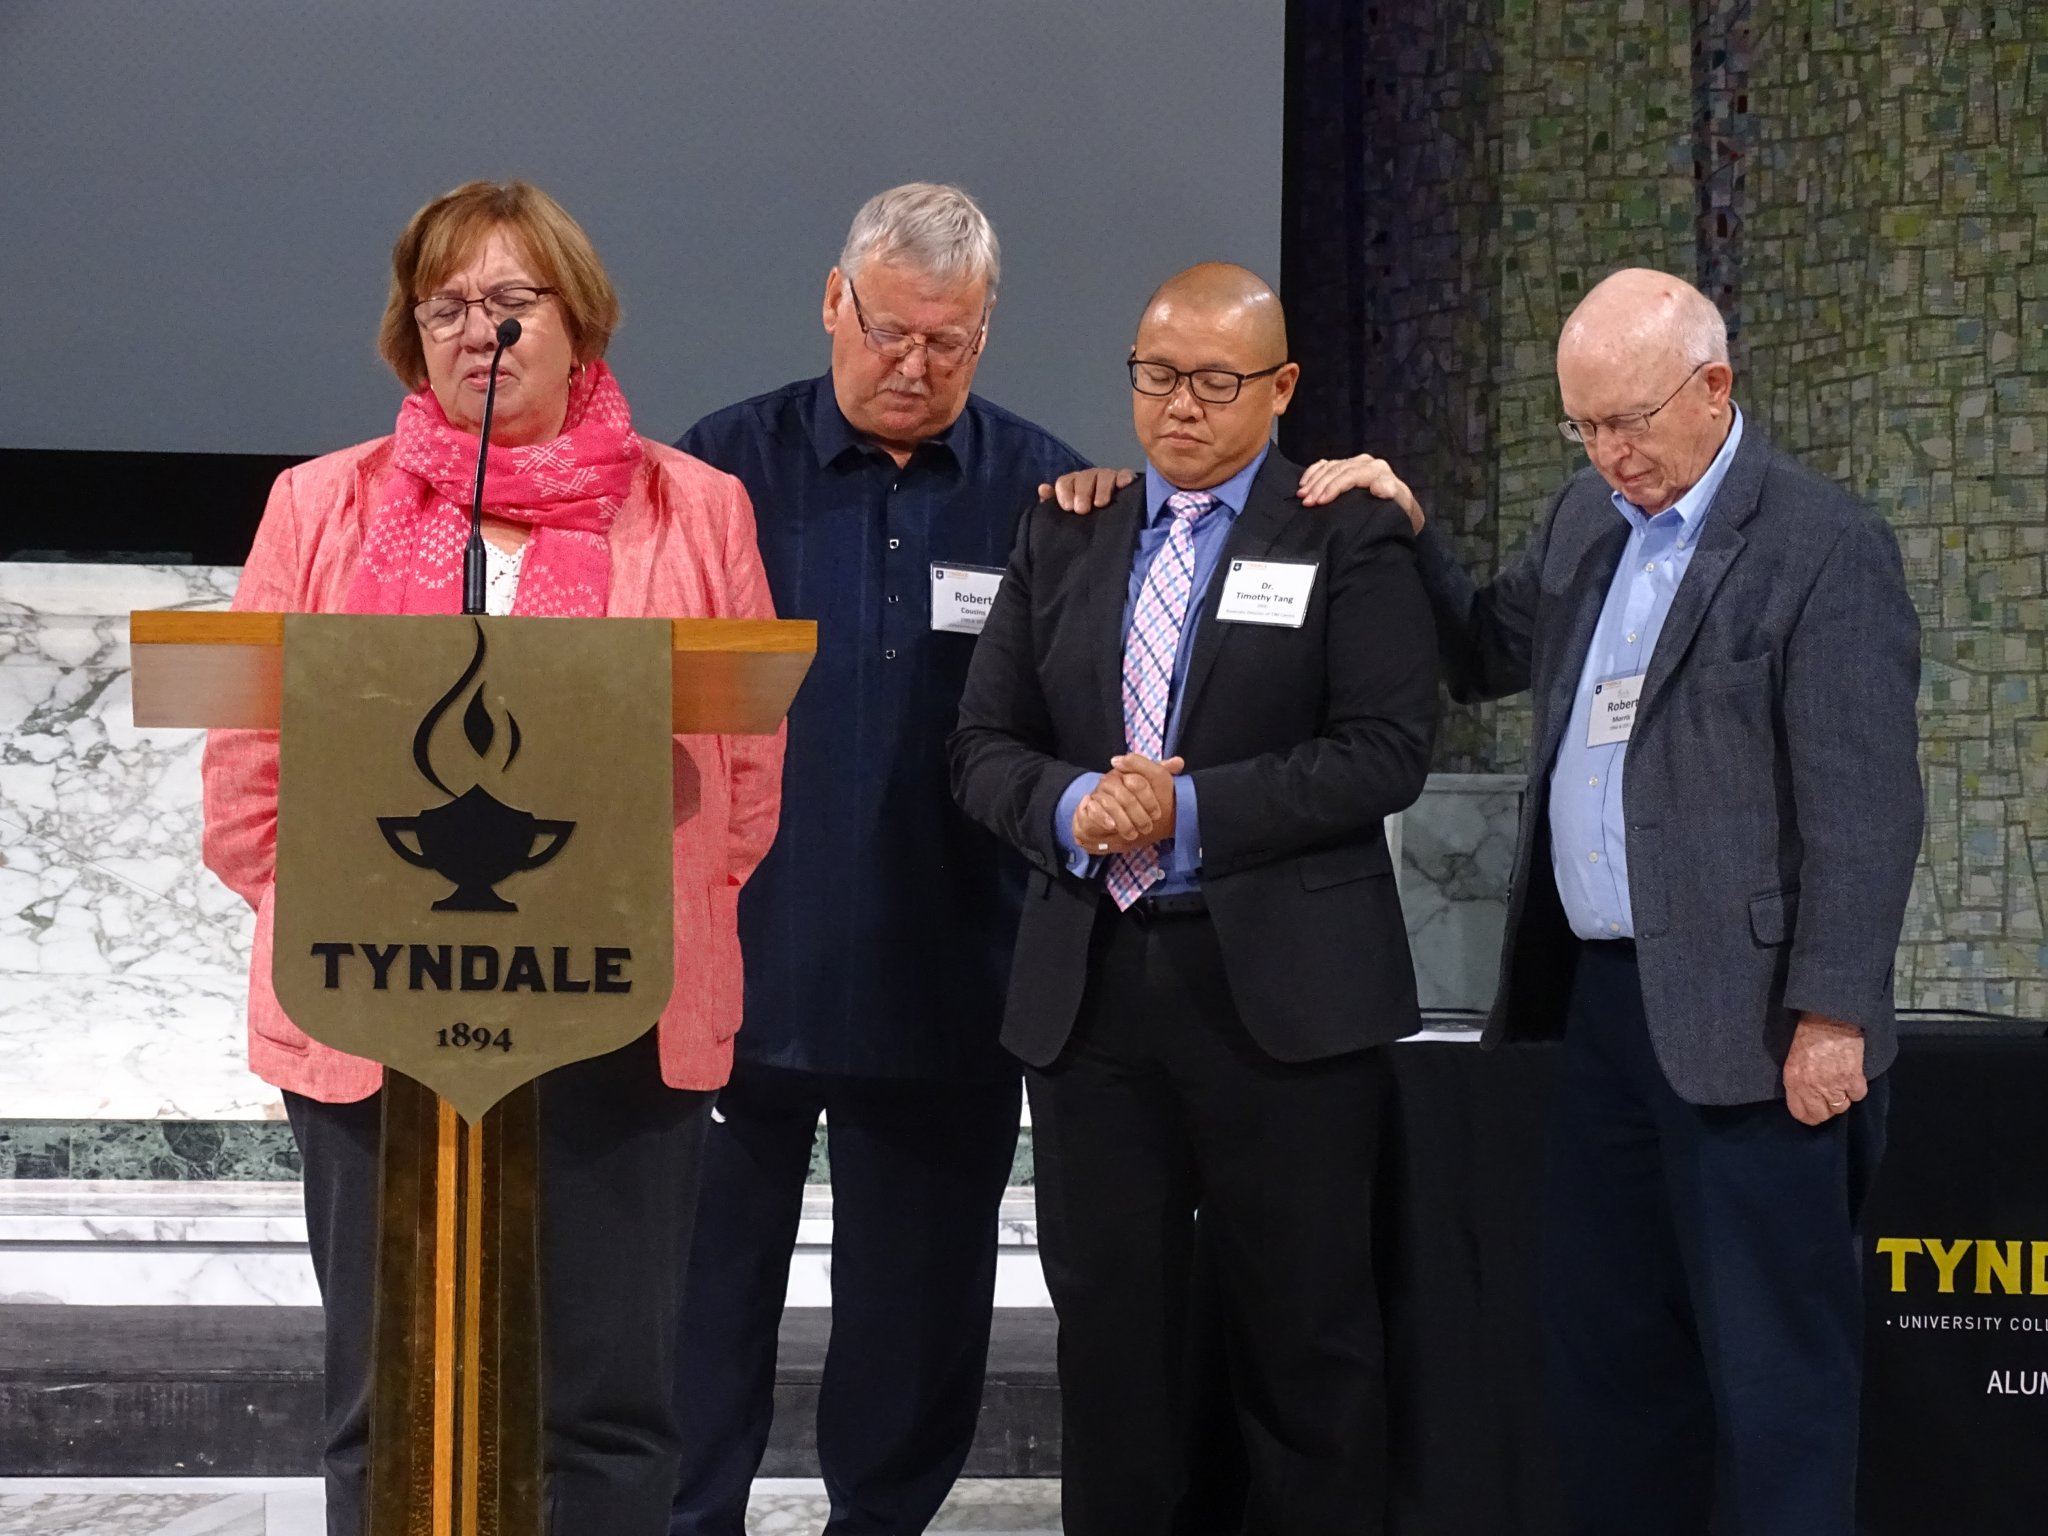 Prayer for Dr. Timothy Tang (new TIM Centre Director)